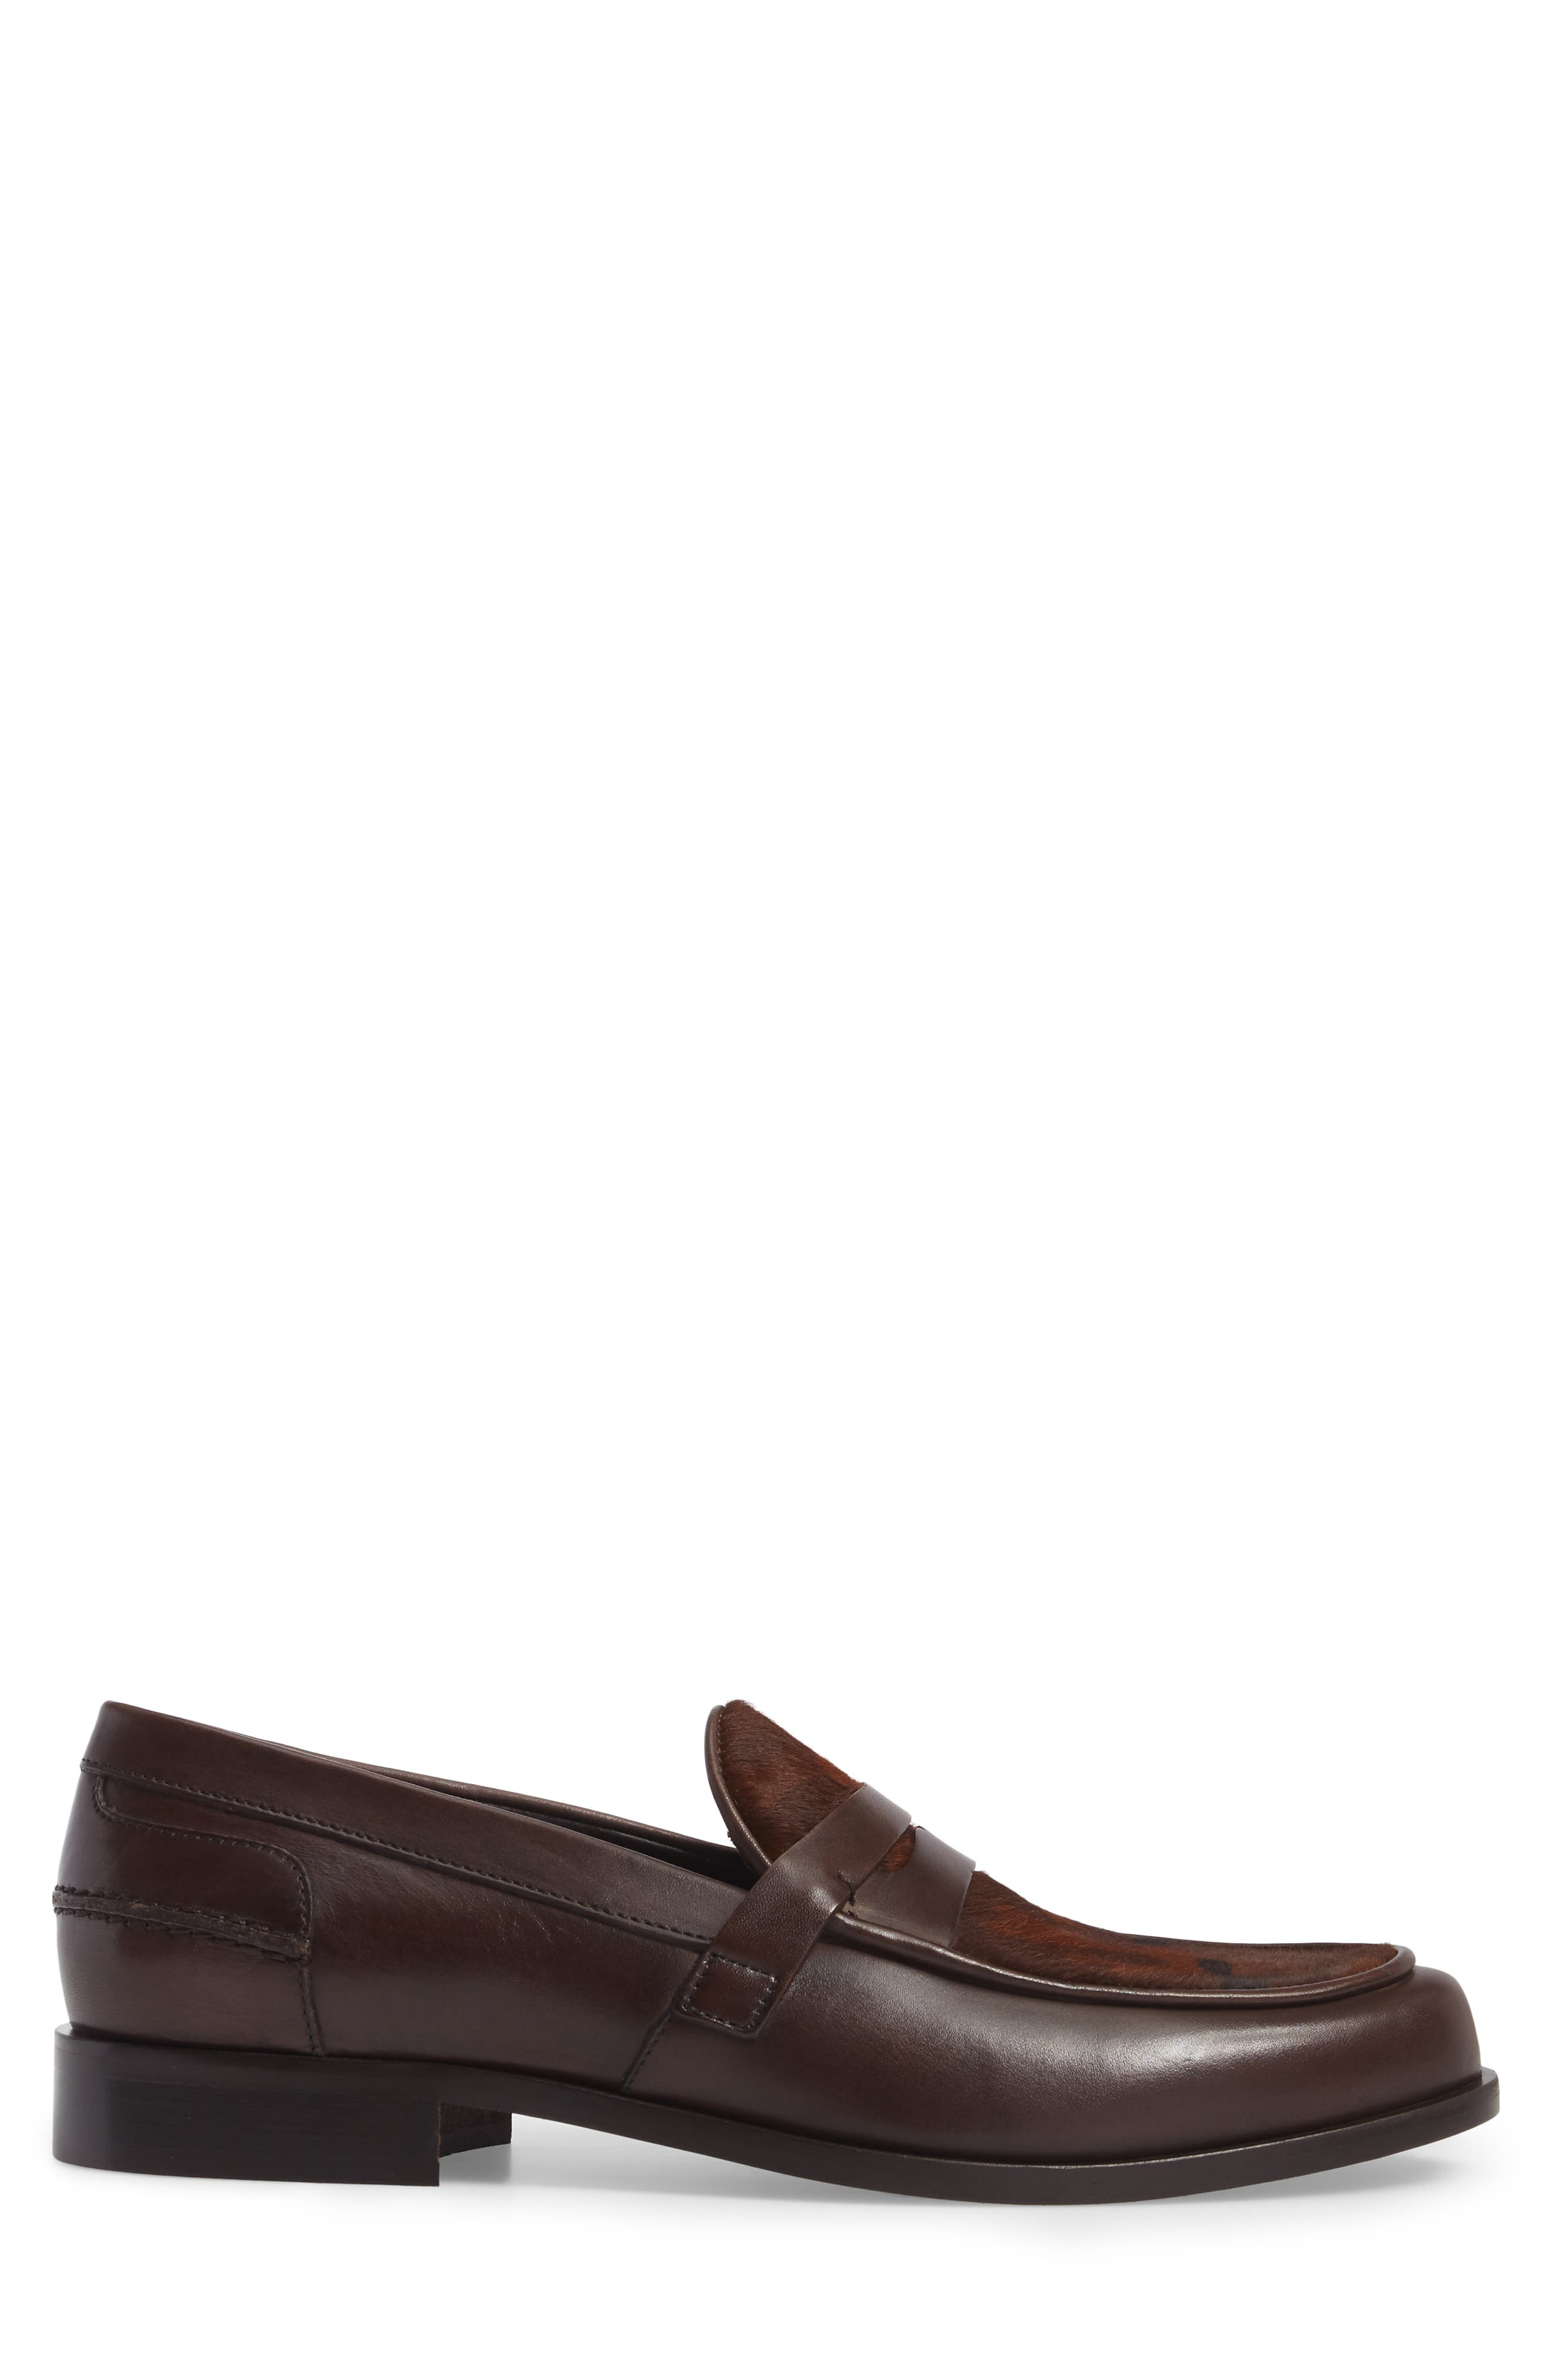 Sawyer Penny Loafer,                             Alternate thumbnail 6, color,